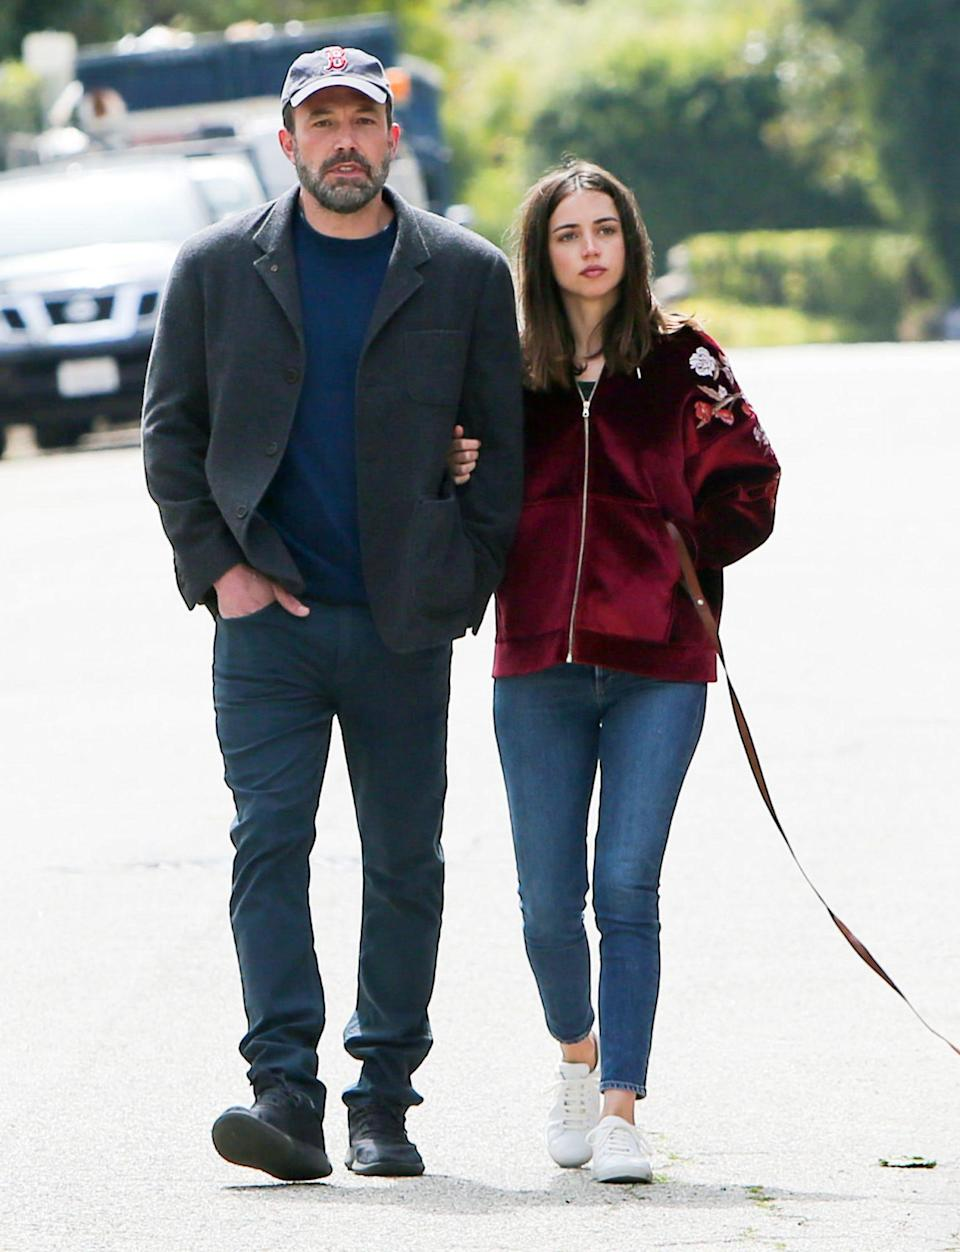 """<p>The pair <a href=""""https://people.com/movies/ben-affleck-and-ana-de-armas-split-source/"""" rel=""""nofollow noopener"""" target=""""_blank"""" data-ylk=""""slk:called it quits"""" class=""""link rapid-noclick-resp"""">called it quits</a> after nearly a year together, PEOPLE announced on Jan. 18. </p> <p>""""Ben is no longer dating Ana,"""" a source told PEOPLE. """"She broke it off. Their relationship was complicated. Ana doesn't want to be Los Angeles based and Ben obviously has to since his kids live in Los Angeles.""""</p> <p>Affleck, 48, and the <i>Knives Out</i> actress, 32, were <a href=""""https://people.com/movies/ben-affleck-ana-de-armas-split-look-back-at-their-relationship/"""" rel=""""nofollow noopener"""" target=""""_blank"""" data-ylk=""""slk:first romantically linked"""" class=""""link rapid-noclick-resp"""">first romantically linked</a> in early March 2020, when they were seen on a trip to her native Cuba after meeting while filming the upcoming thriller <i>Deep Water</i> in New Orleans.</p> <p>The pair were frequently spotted together on daily walks in L.A. throughout the summer. </p>"""